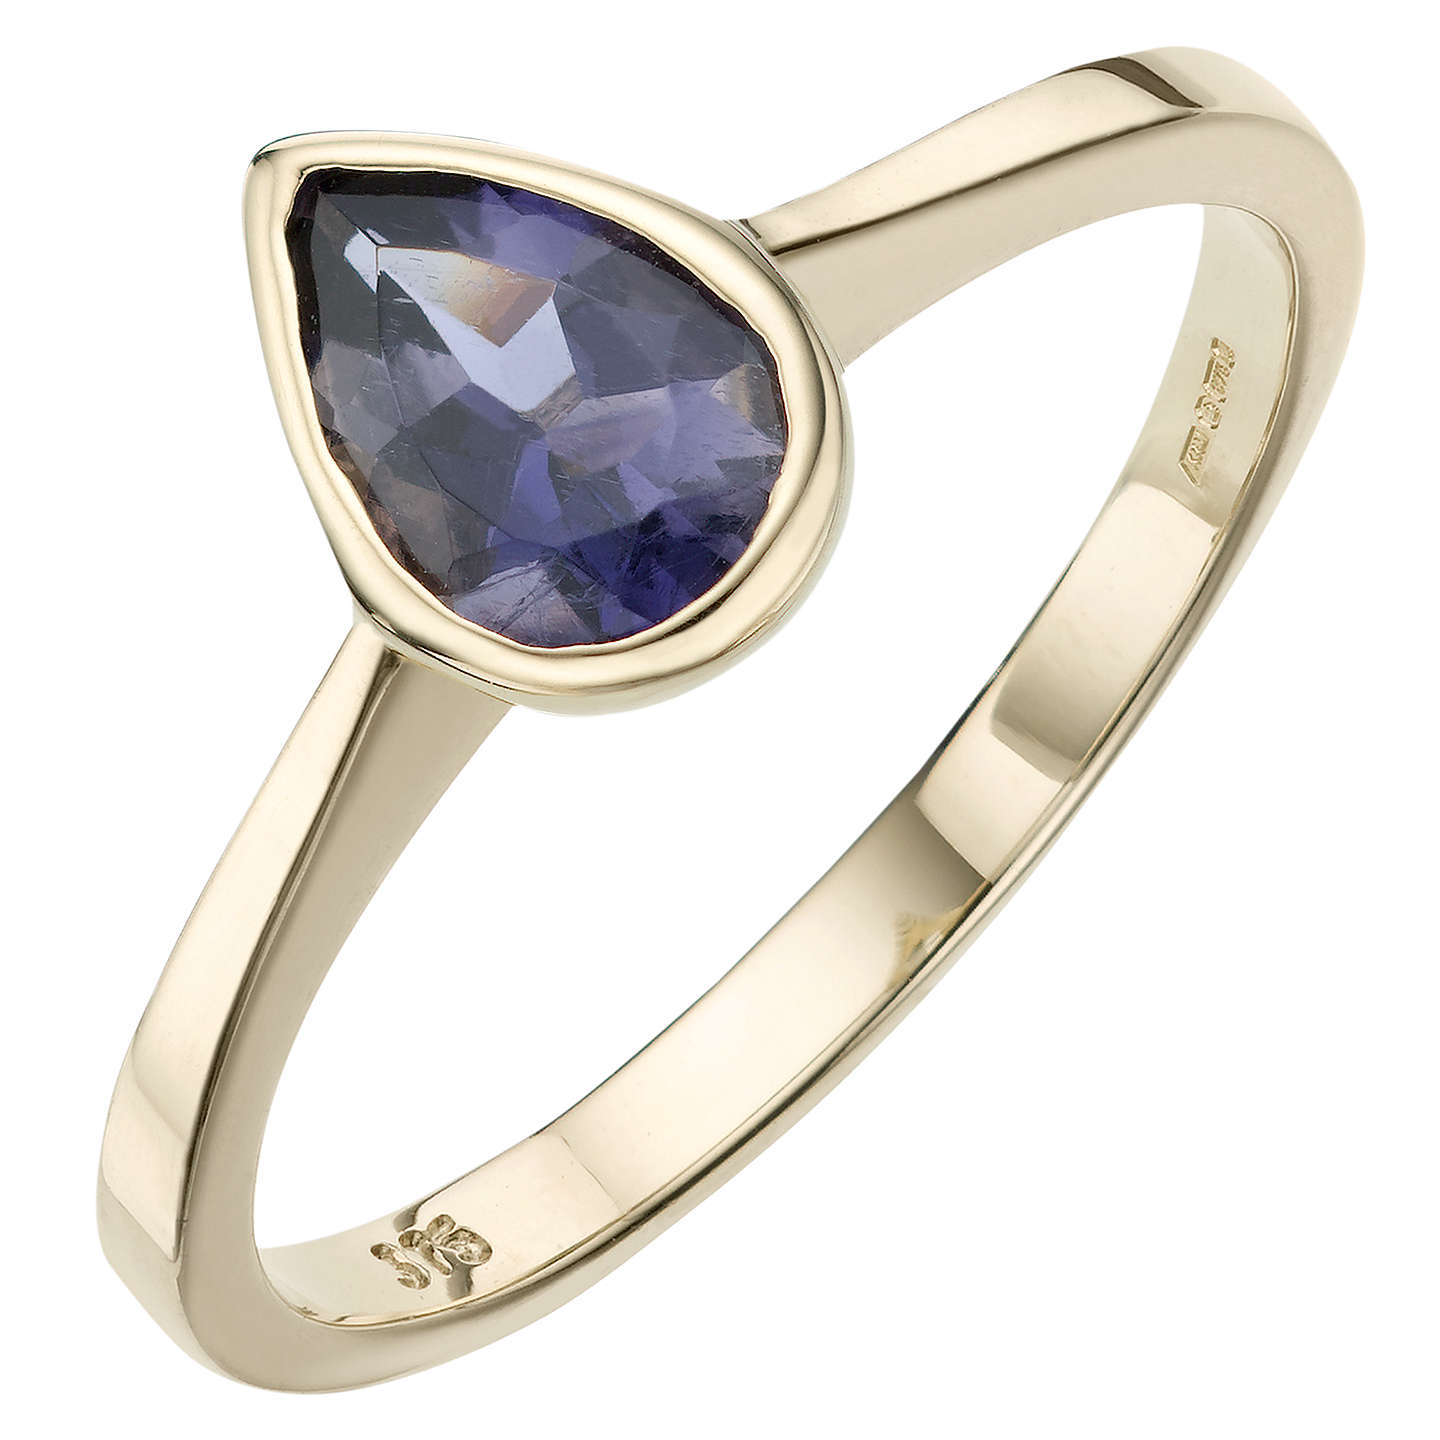 BuyA B Davis 9ct Yellow Gold Pearshaped Rubover Gemstone Ring, Iolite Online at johnlewis.com